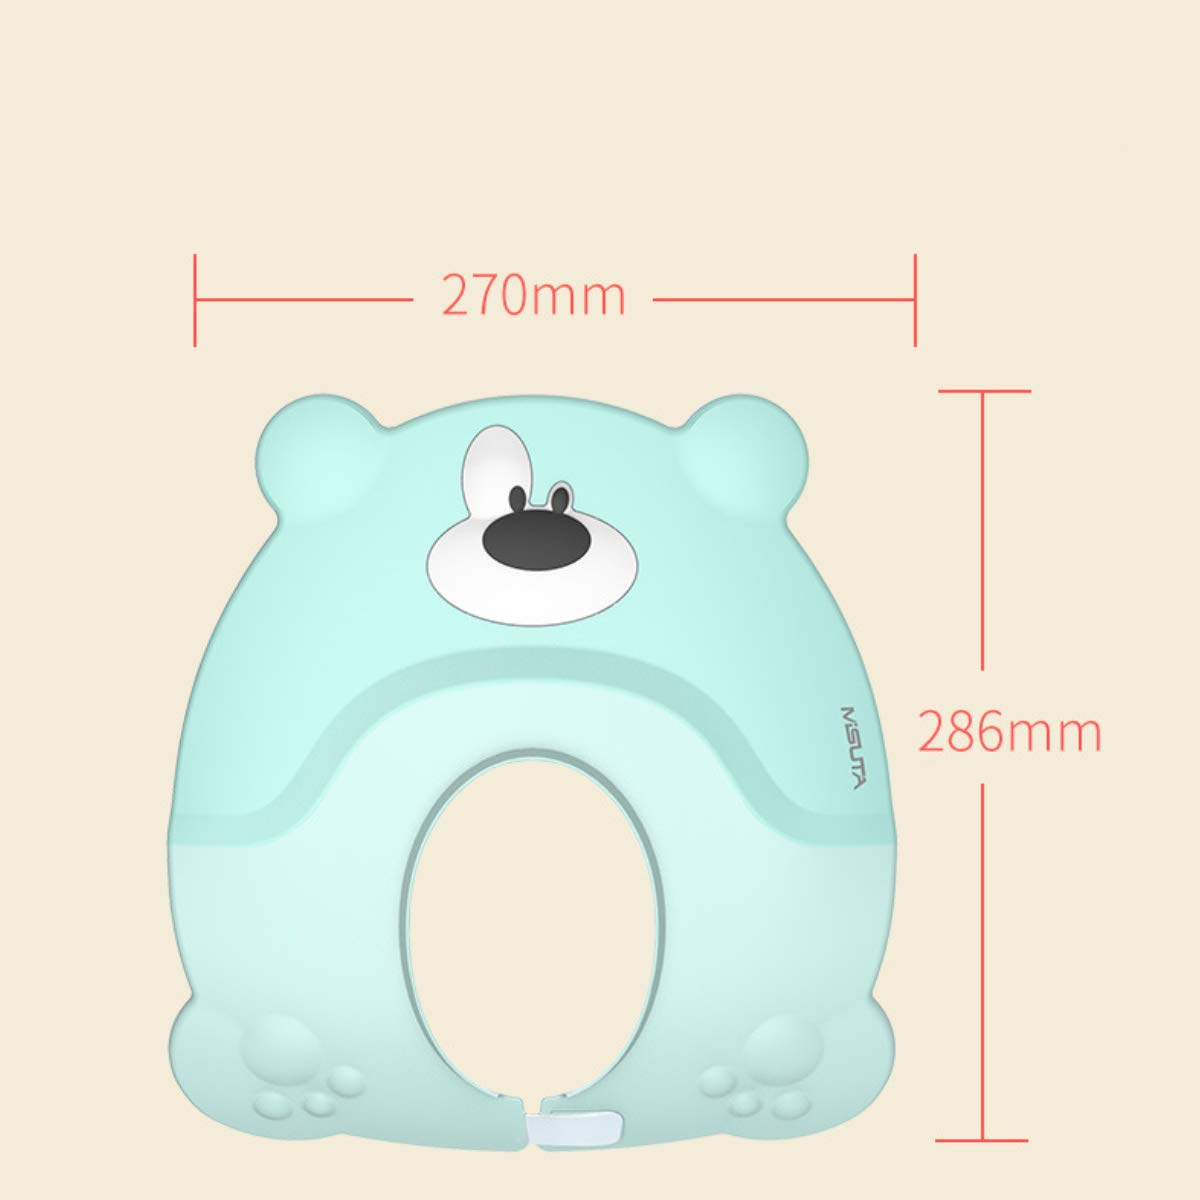 Baby Shampoo Cap Silicone Shower Protection Hat Children's Adjustable Bathing Cap TPE PP Material Suitable for Toddlers, Babies, Kids